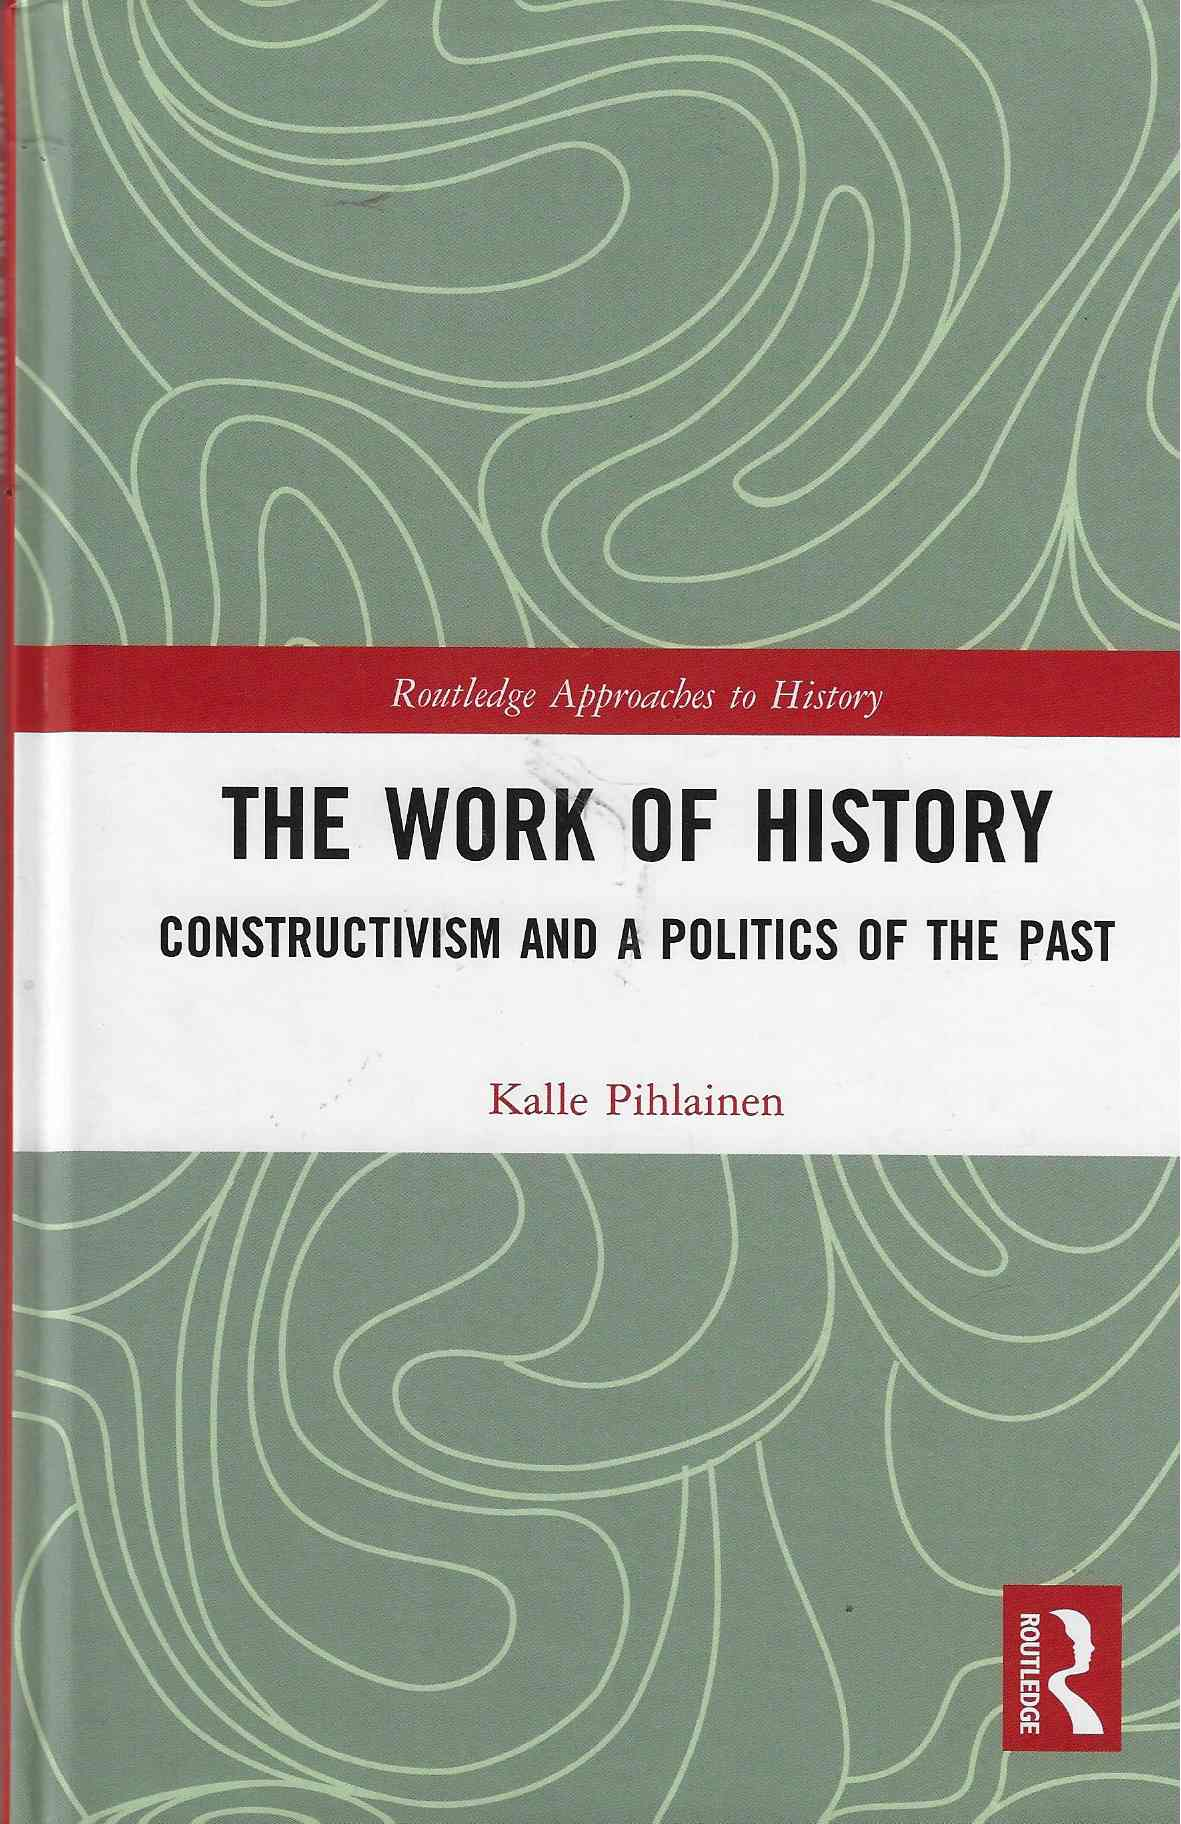 Image for The Work of History Constructivism and a Politics of the Past